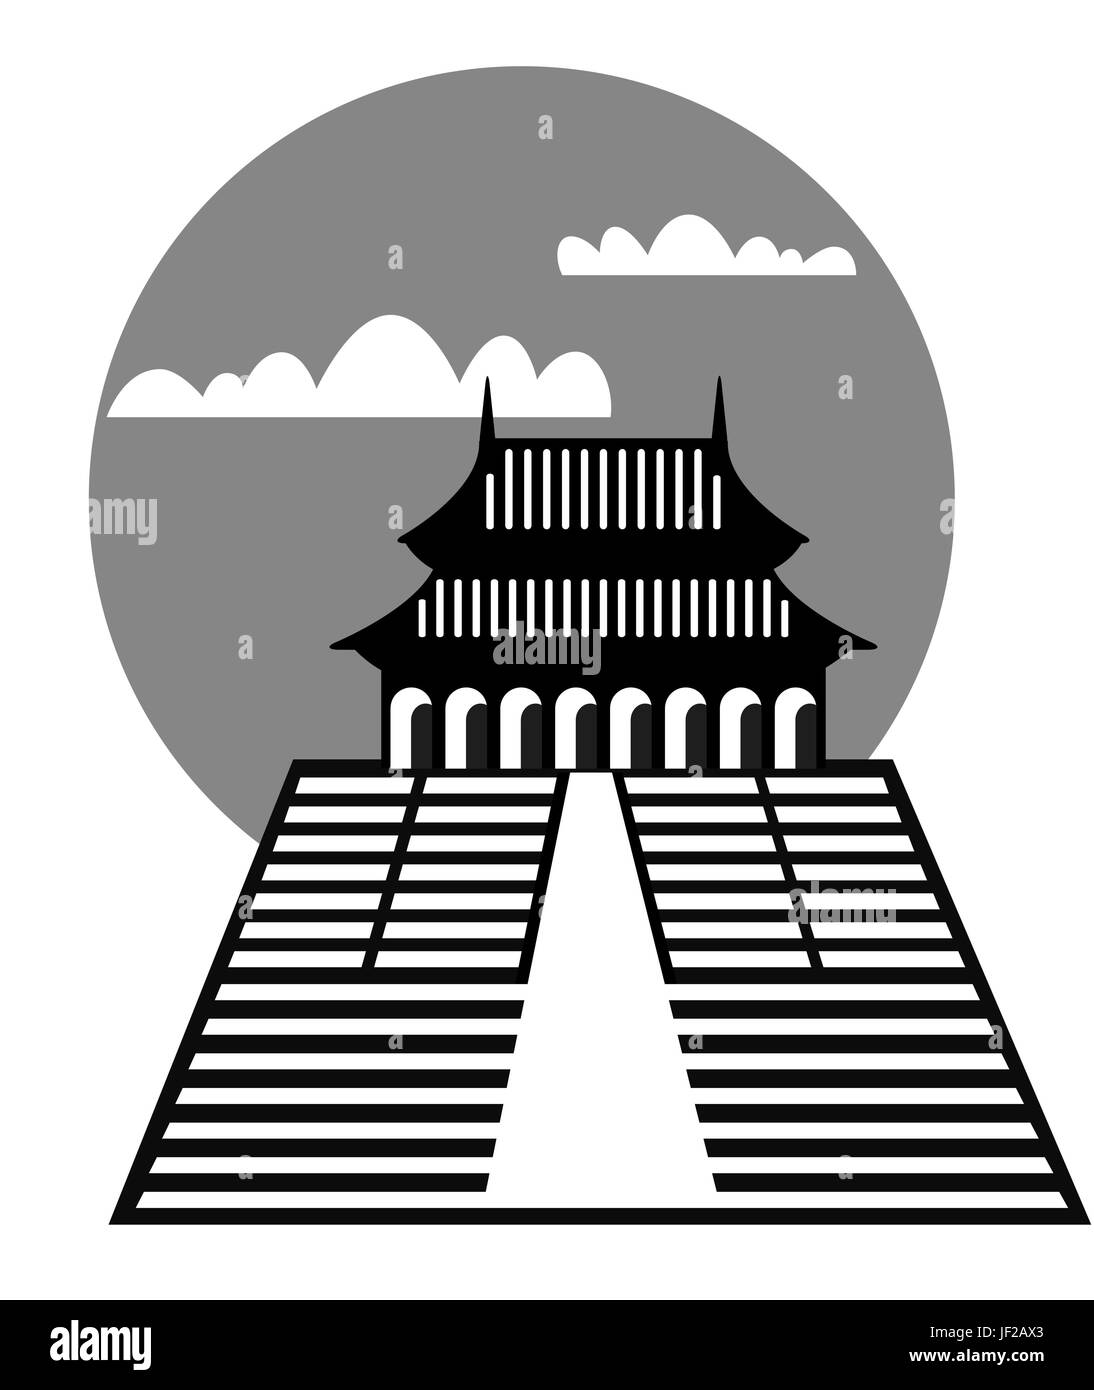 asia, china, style of construction, architecture, architectural style, japan, - Stock Vector